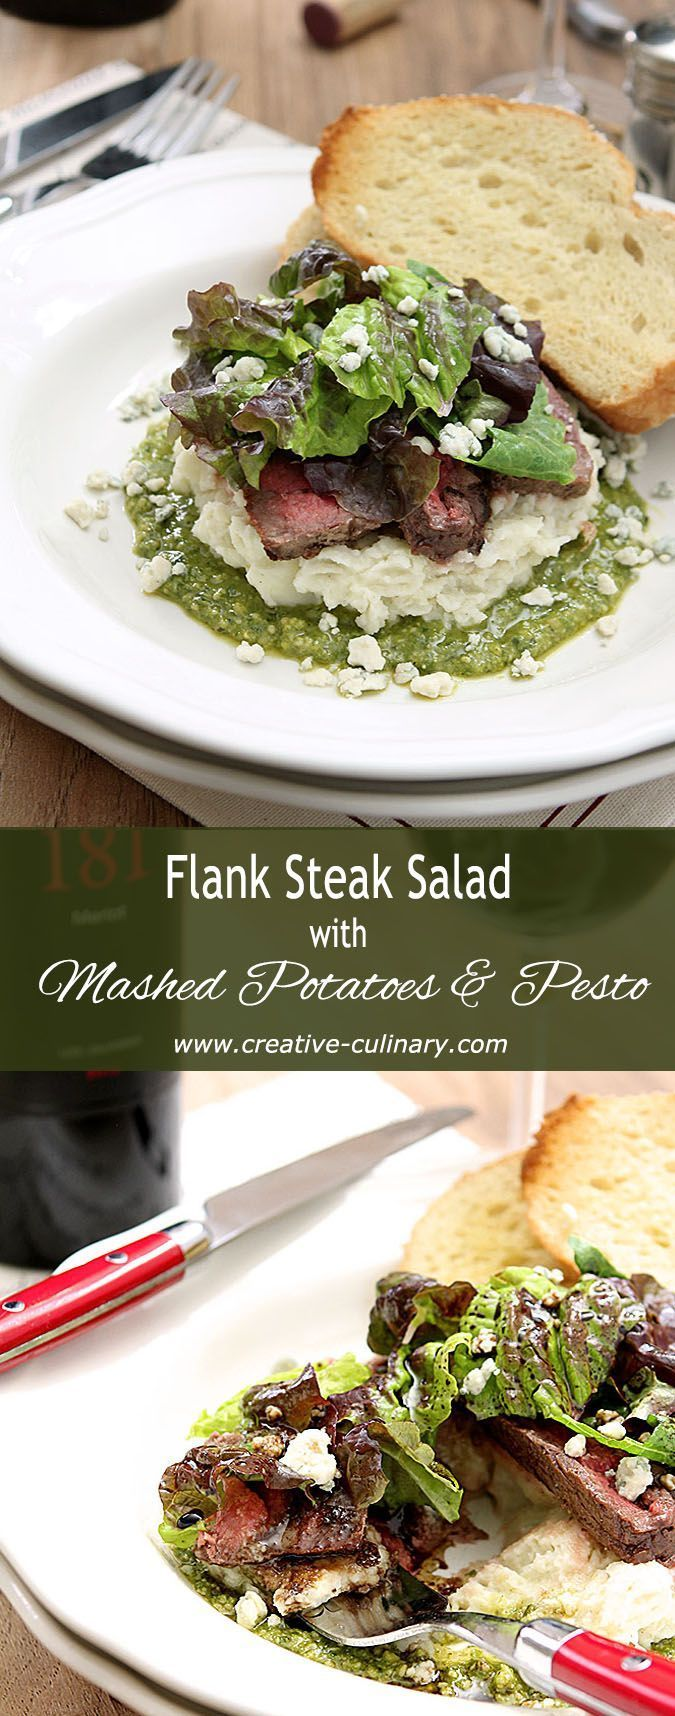 Flank Steak Salad with Mashed Potatoes, Pesto and Gorgonzola Cheese is easy and delicious and makes a fantastic presentation for a special dinner. Or a football game even (that's what I did!). via @creativculinary